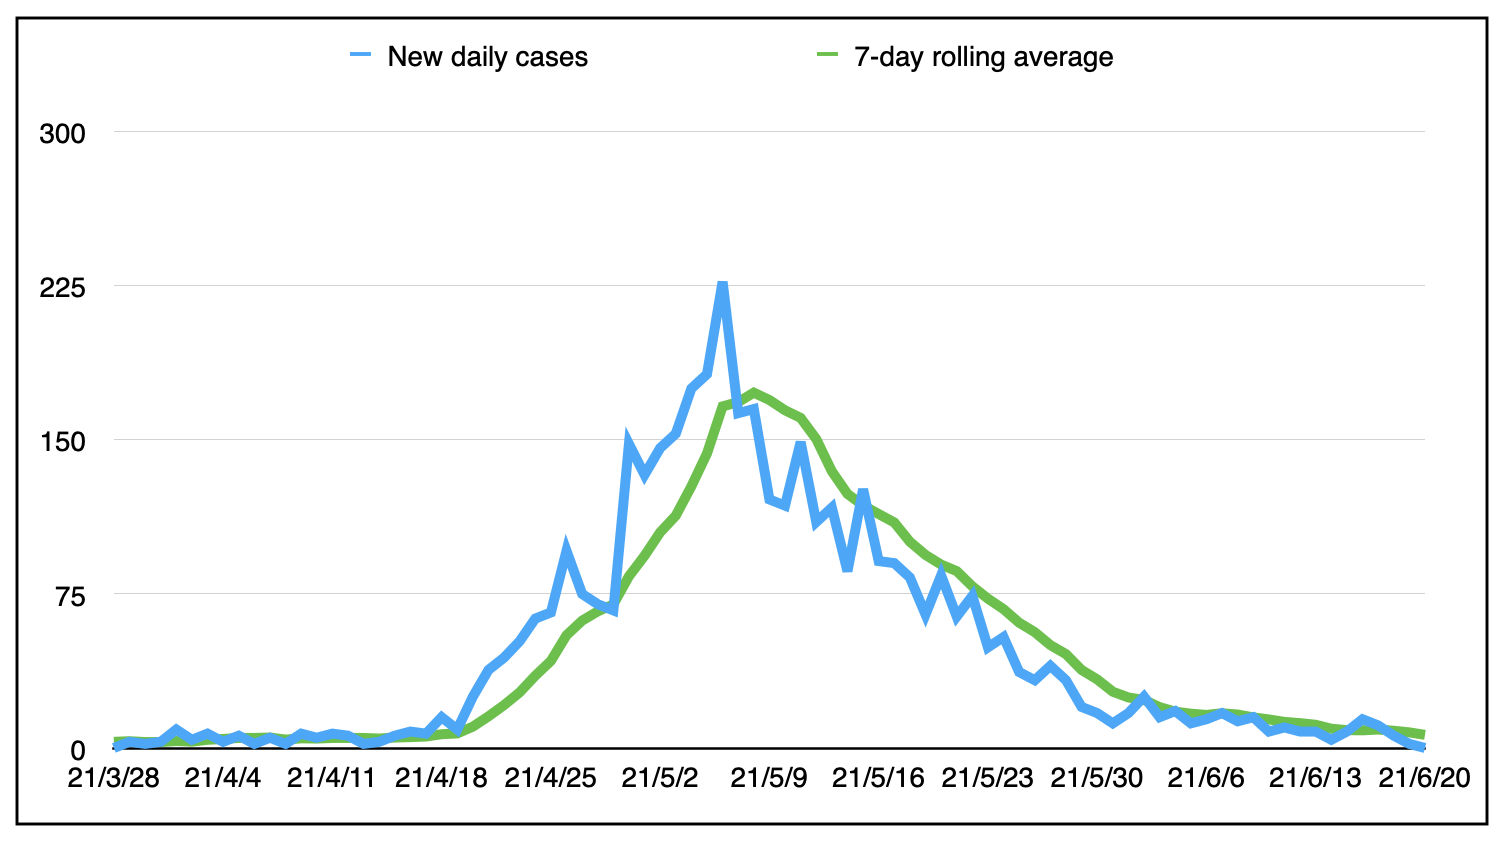 The mountain shaped graph of new daily cases in jagged green and blue lines.